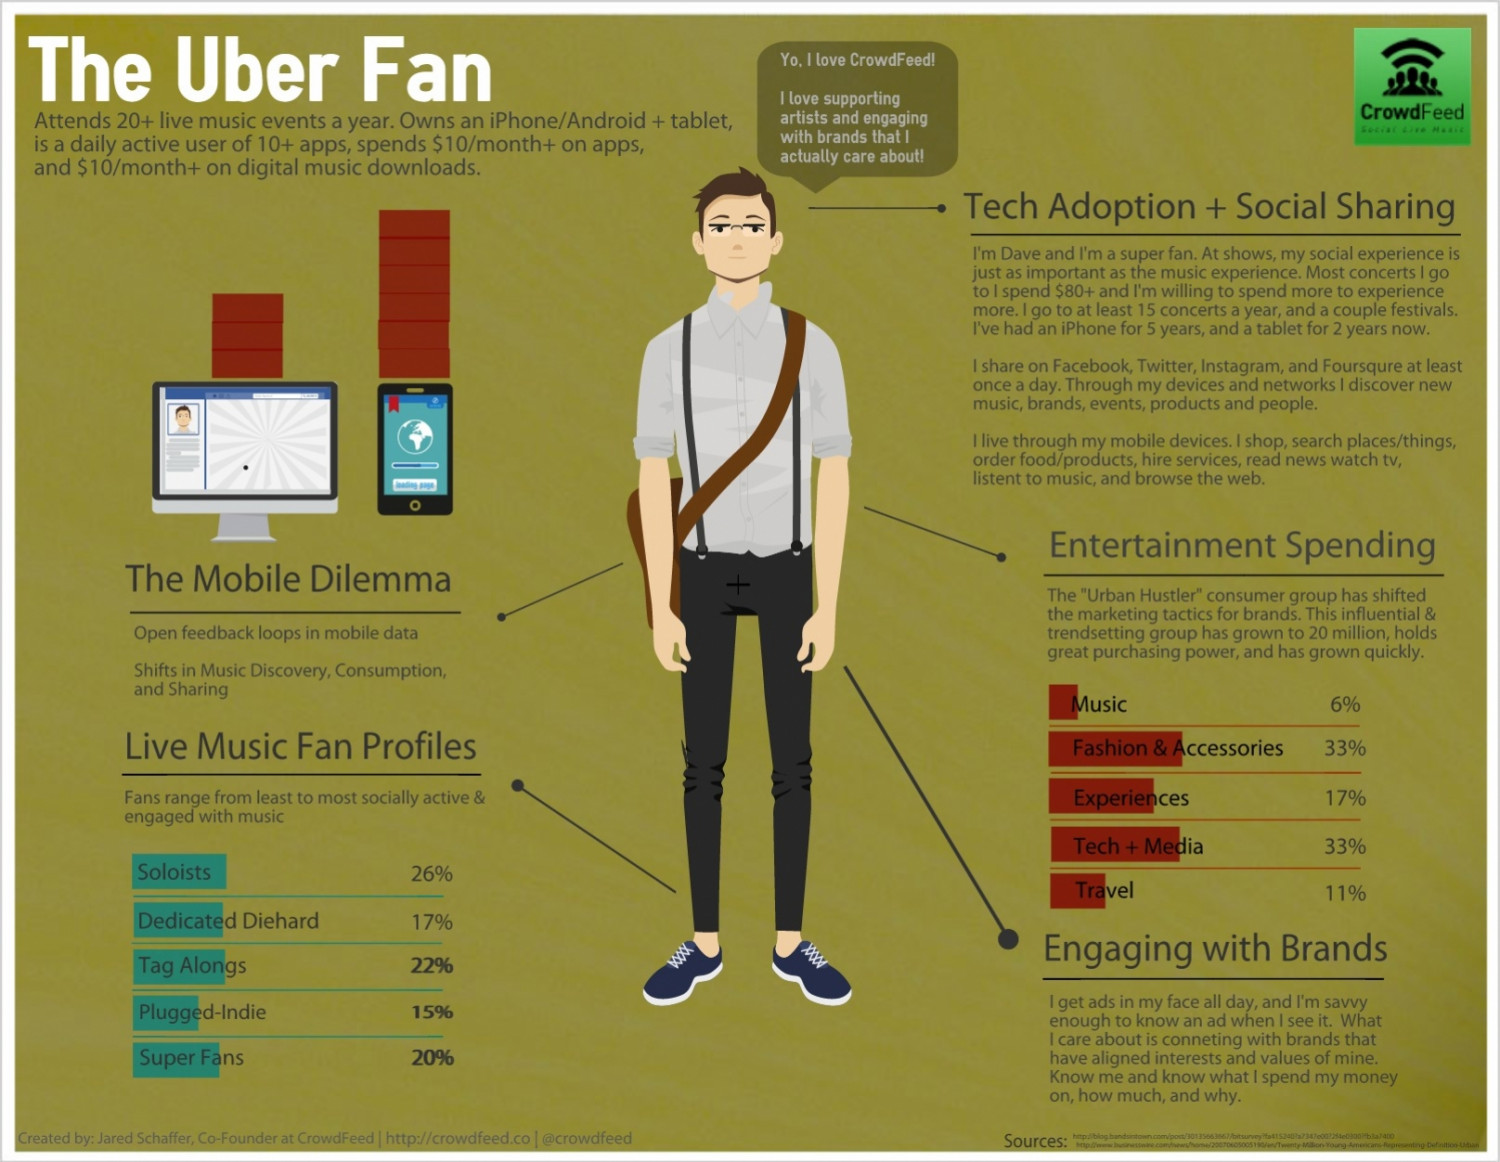 The Uber Fan - Concerts & Festivals Infographic